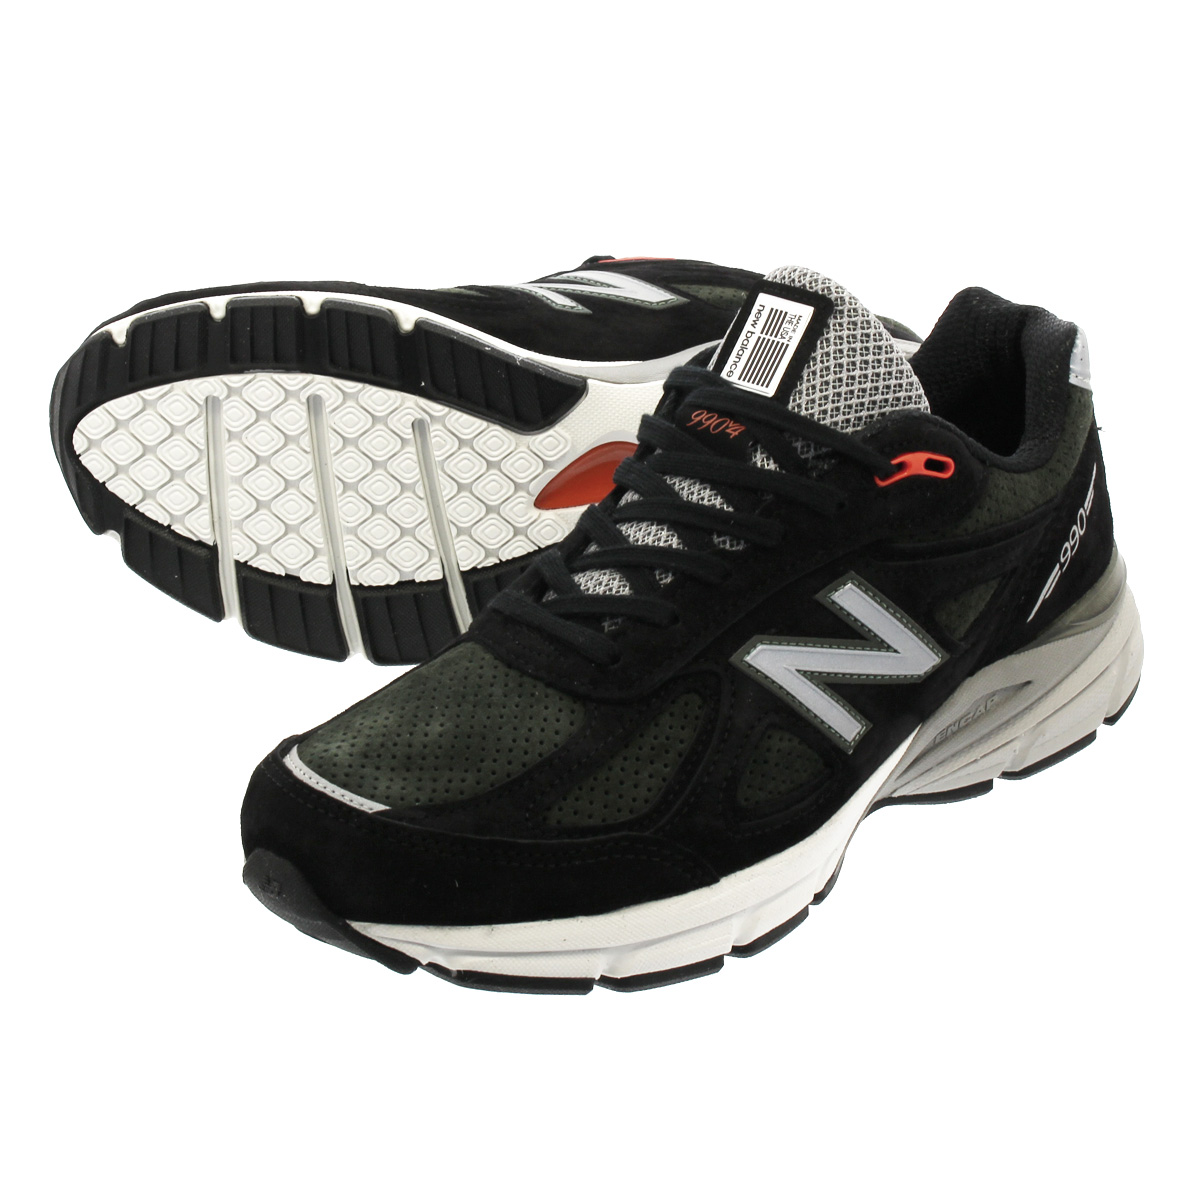 NEW BALANCE M990MB4 【MADE IN U.S.A】 ニューバランス M990 MB4 ROSIN